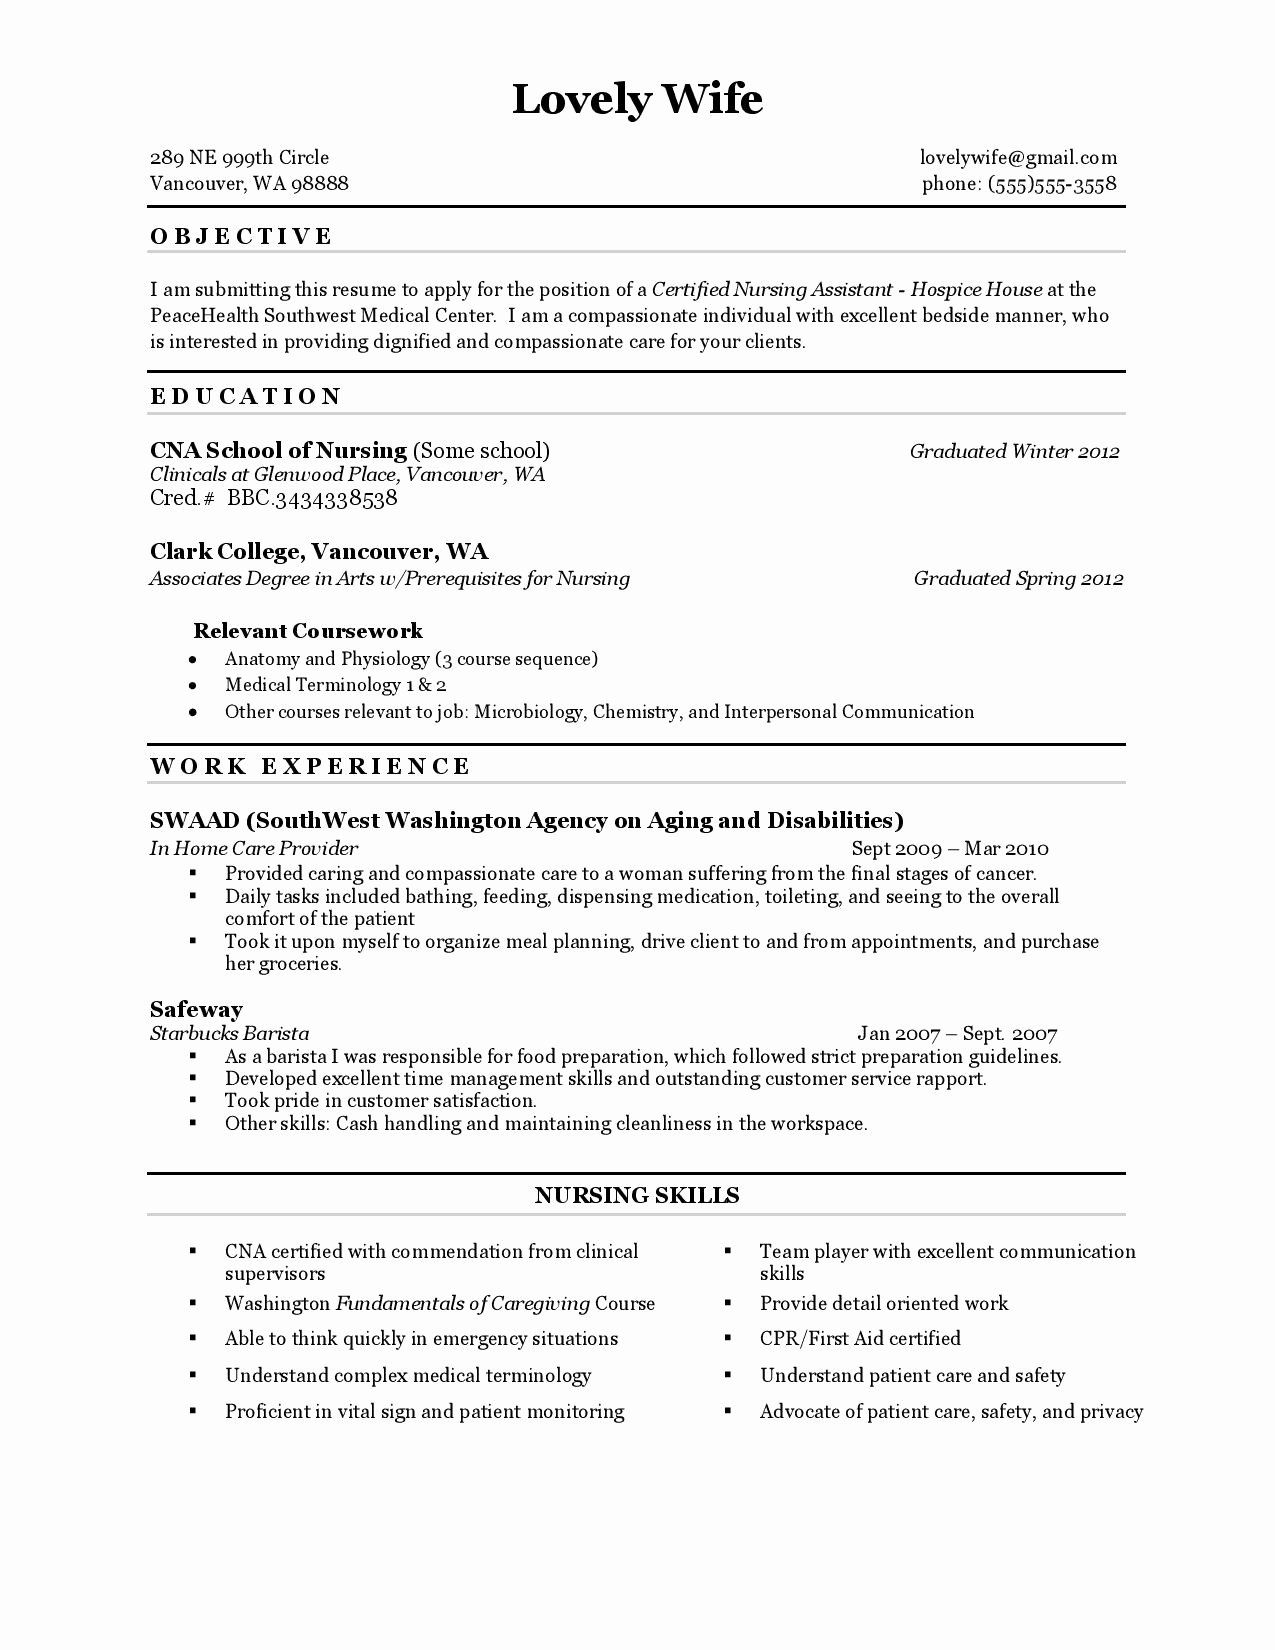 Pin on Best resume example for 2020